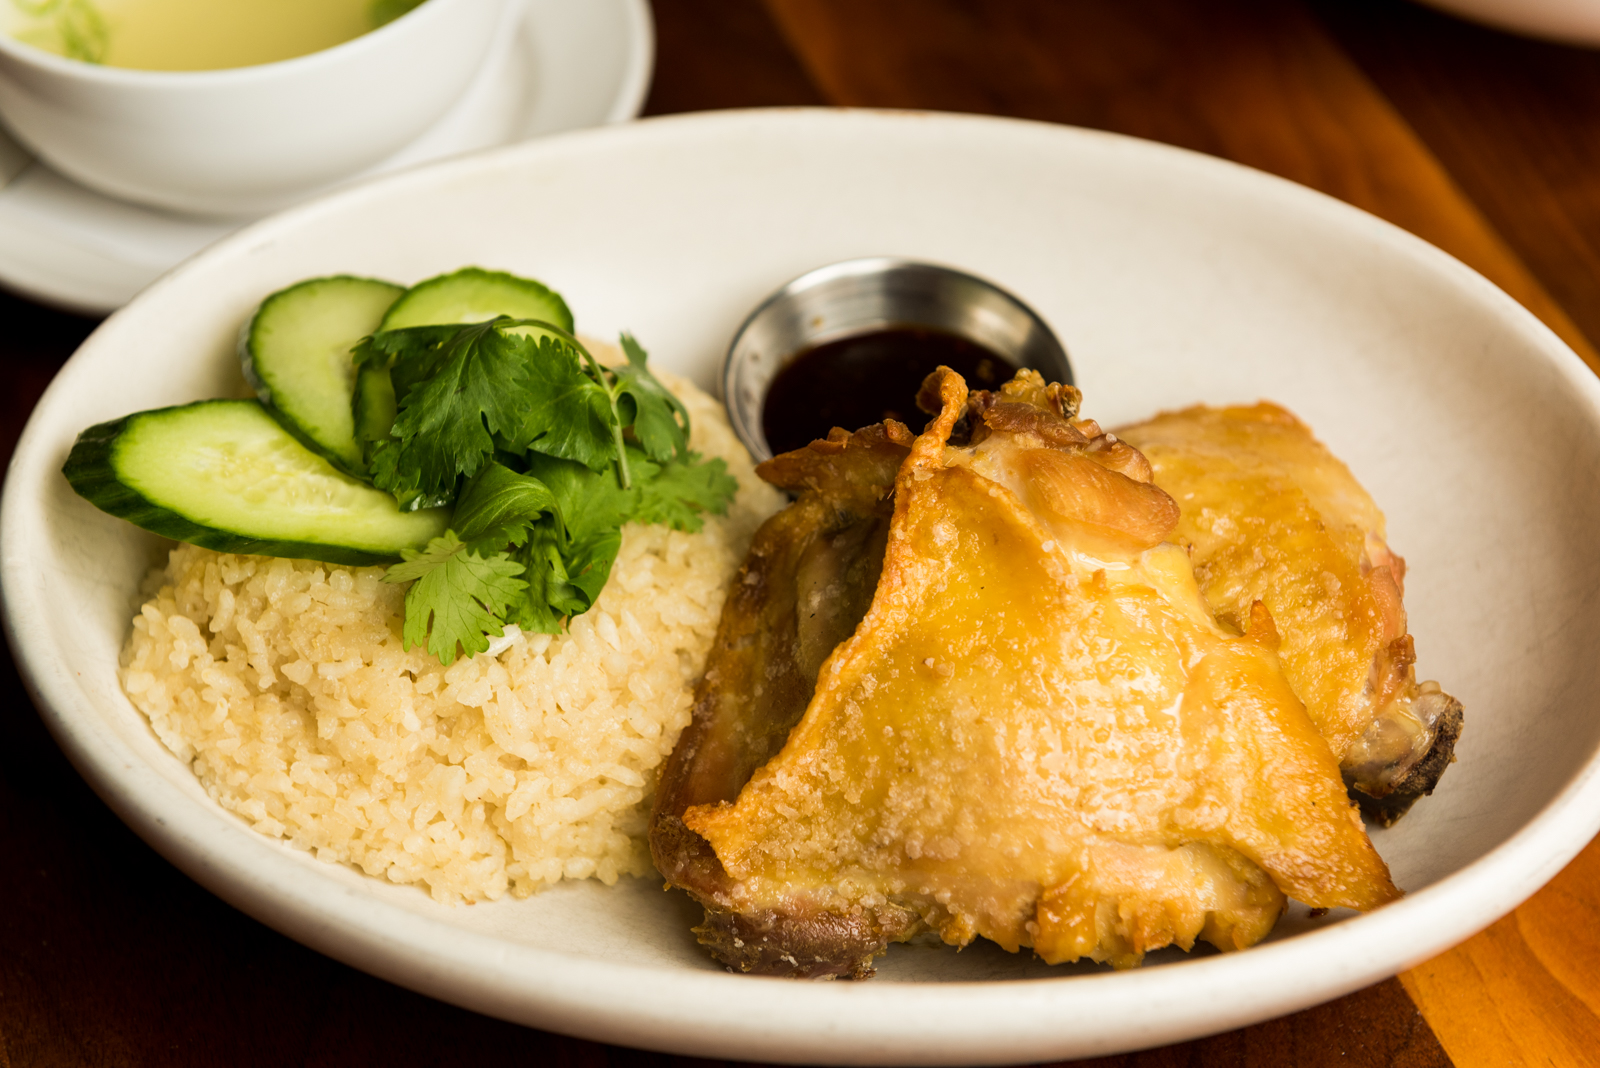 Her signature Singapore Chicken Rice comes with poached and flash fried chicken thighs.